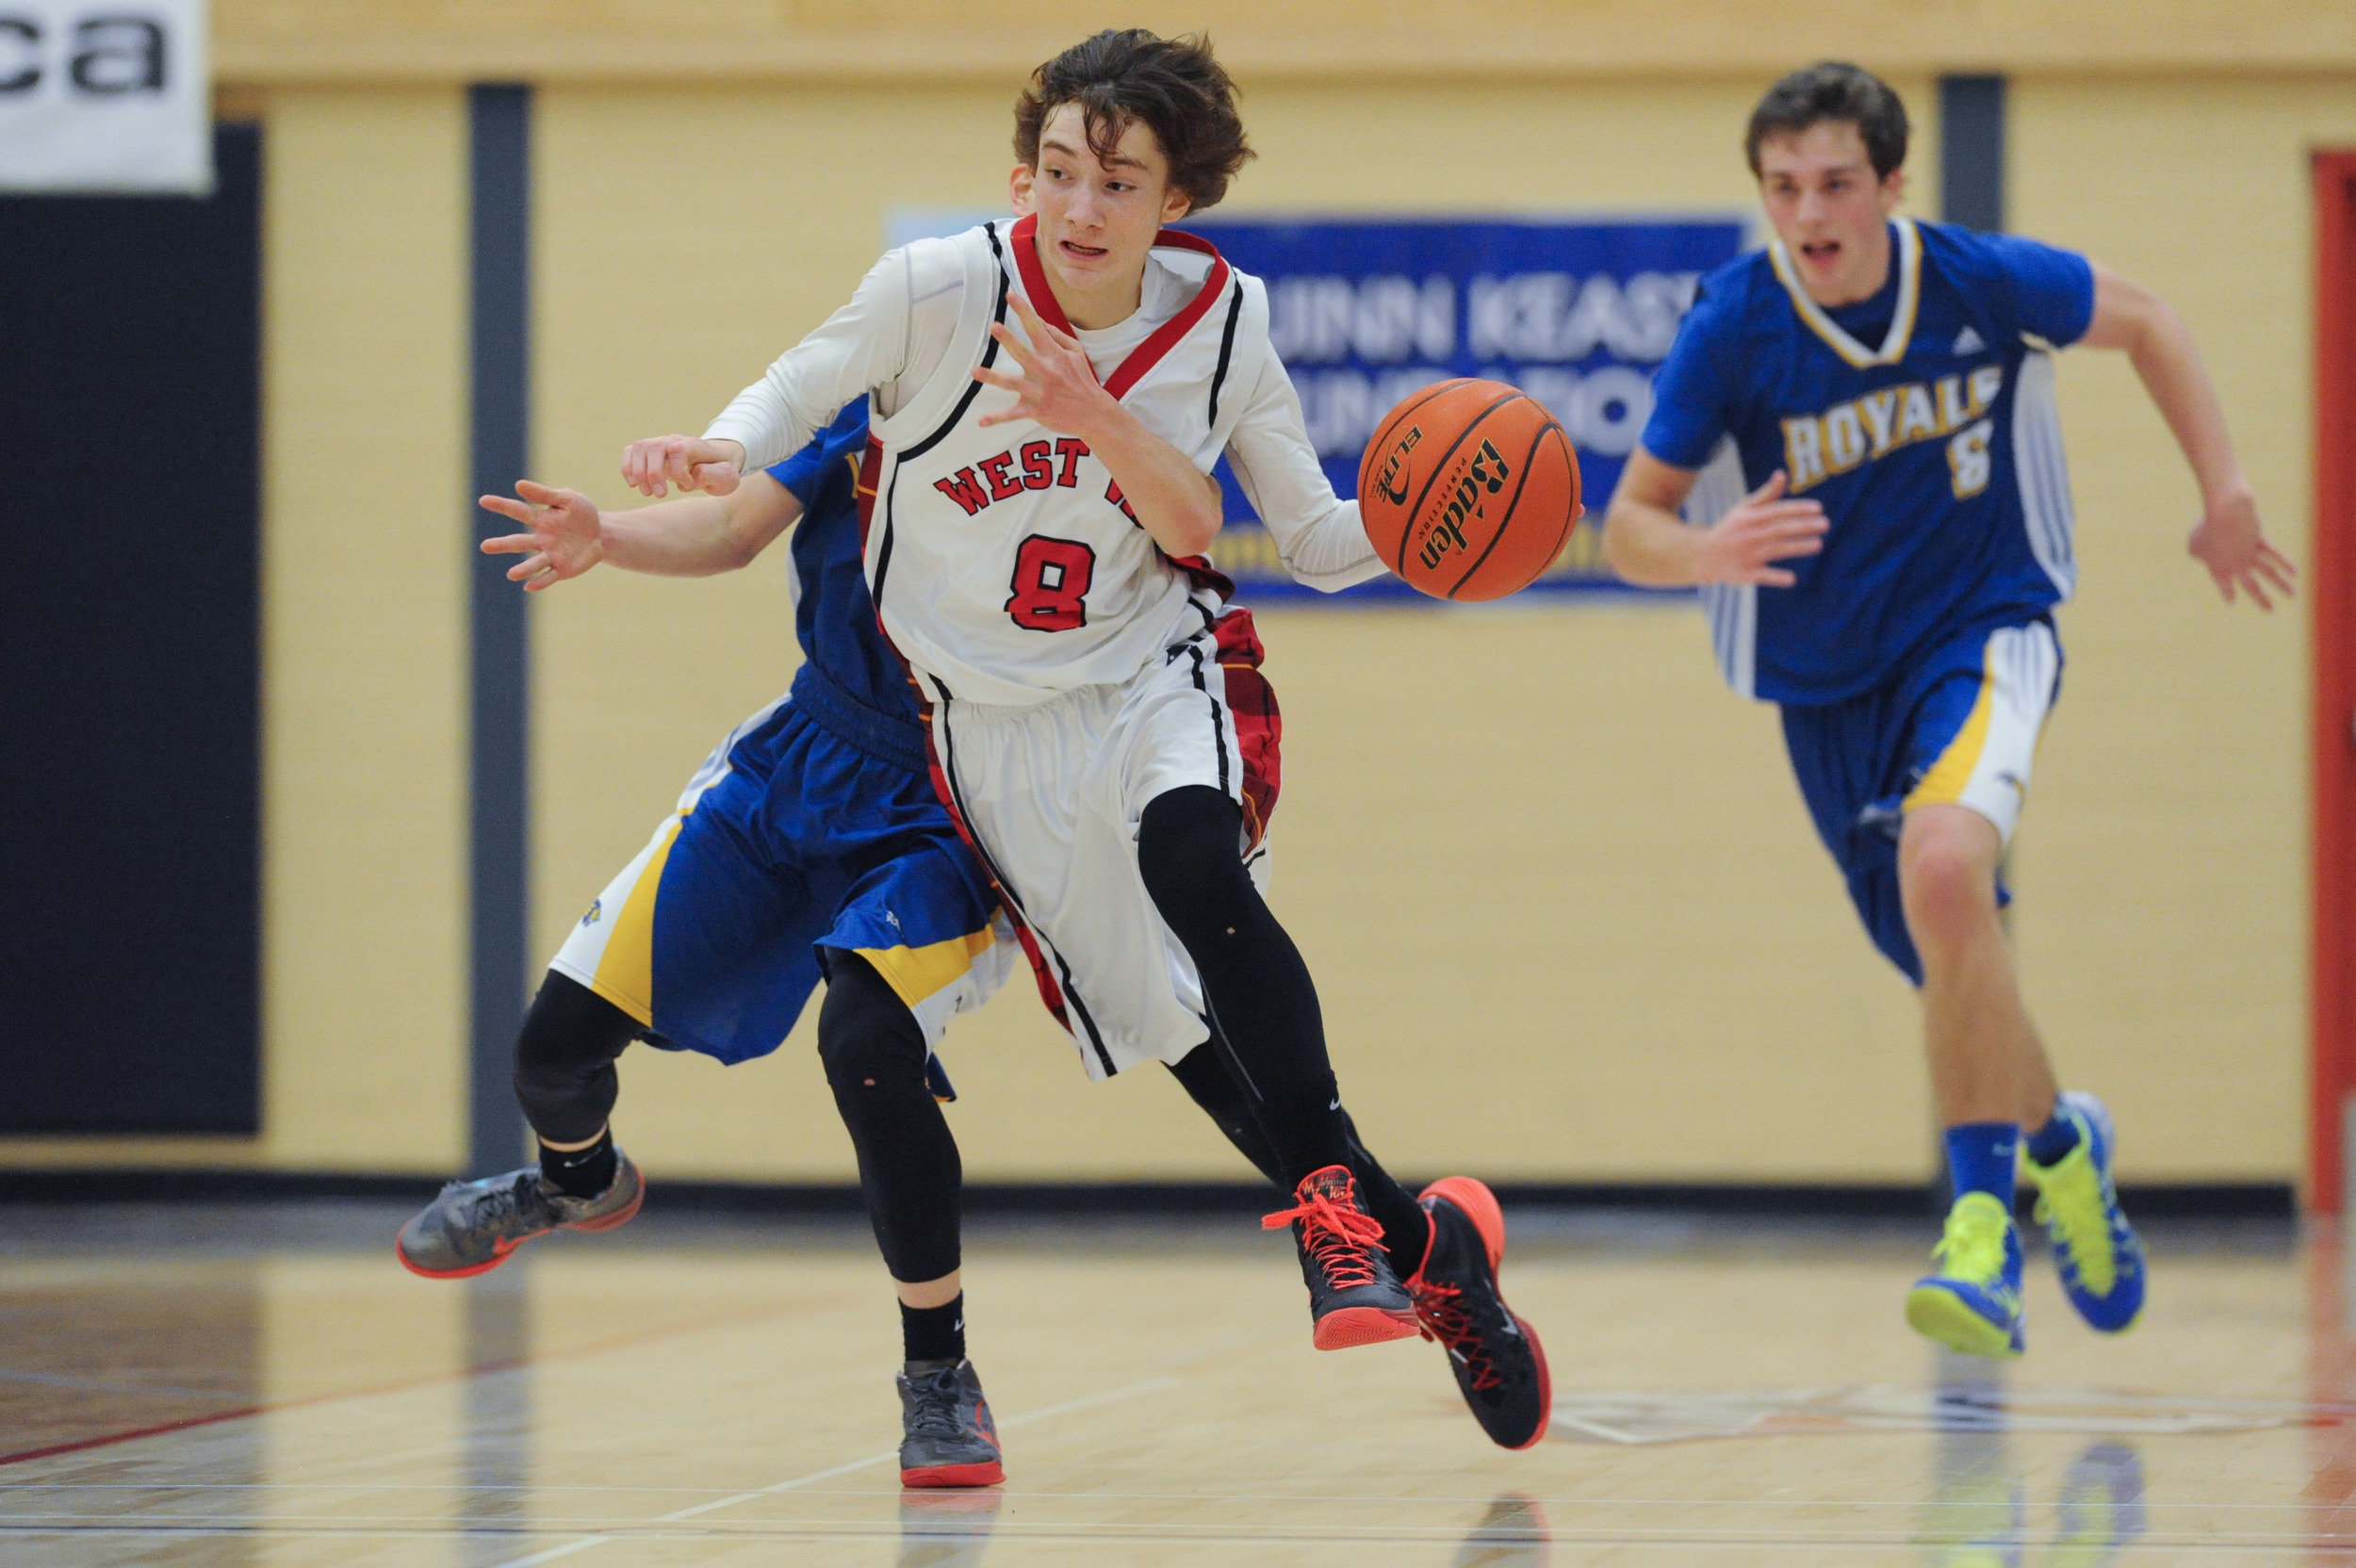 TOURNAMENT MVP LUKE RYAN HAD 25 POINTS IN THE SECOND HALF TO LEAD THE WEST VANCOUVER HIGHLANDERS TO THE FIRST EVER HOWE SOUND AAAA CHAMPIONSHIP